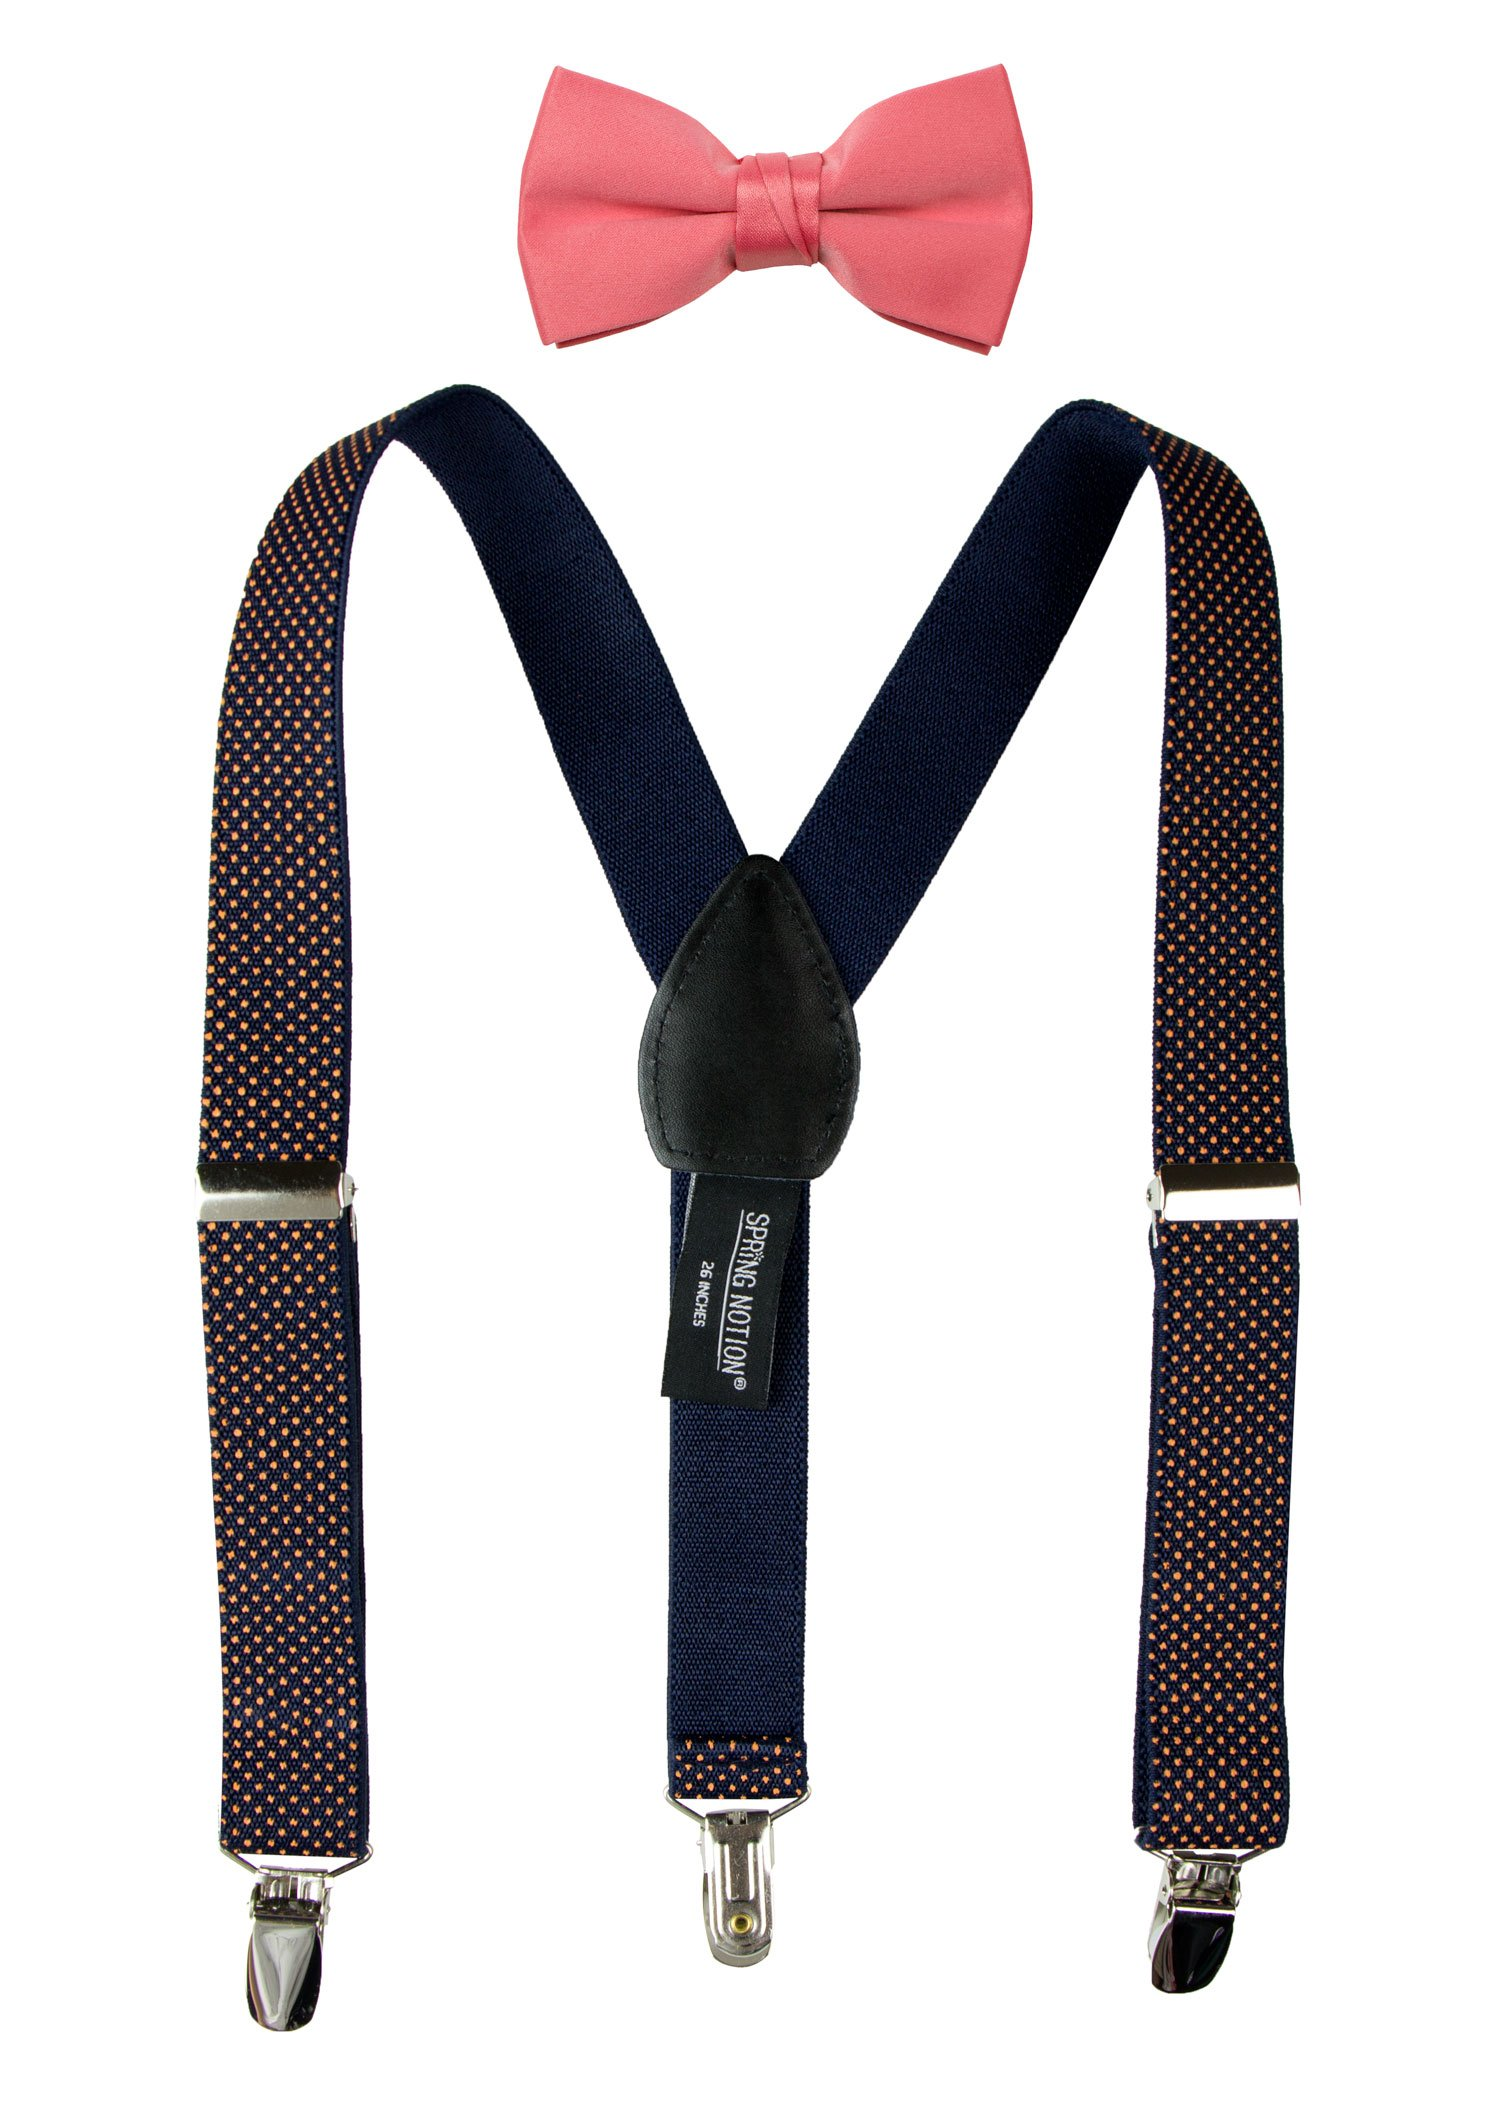 Spring Notion Boys' Suspenders and Solid Color Bowtie Set Navy Orange Dots Small